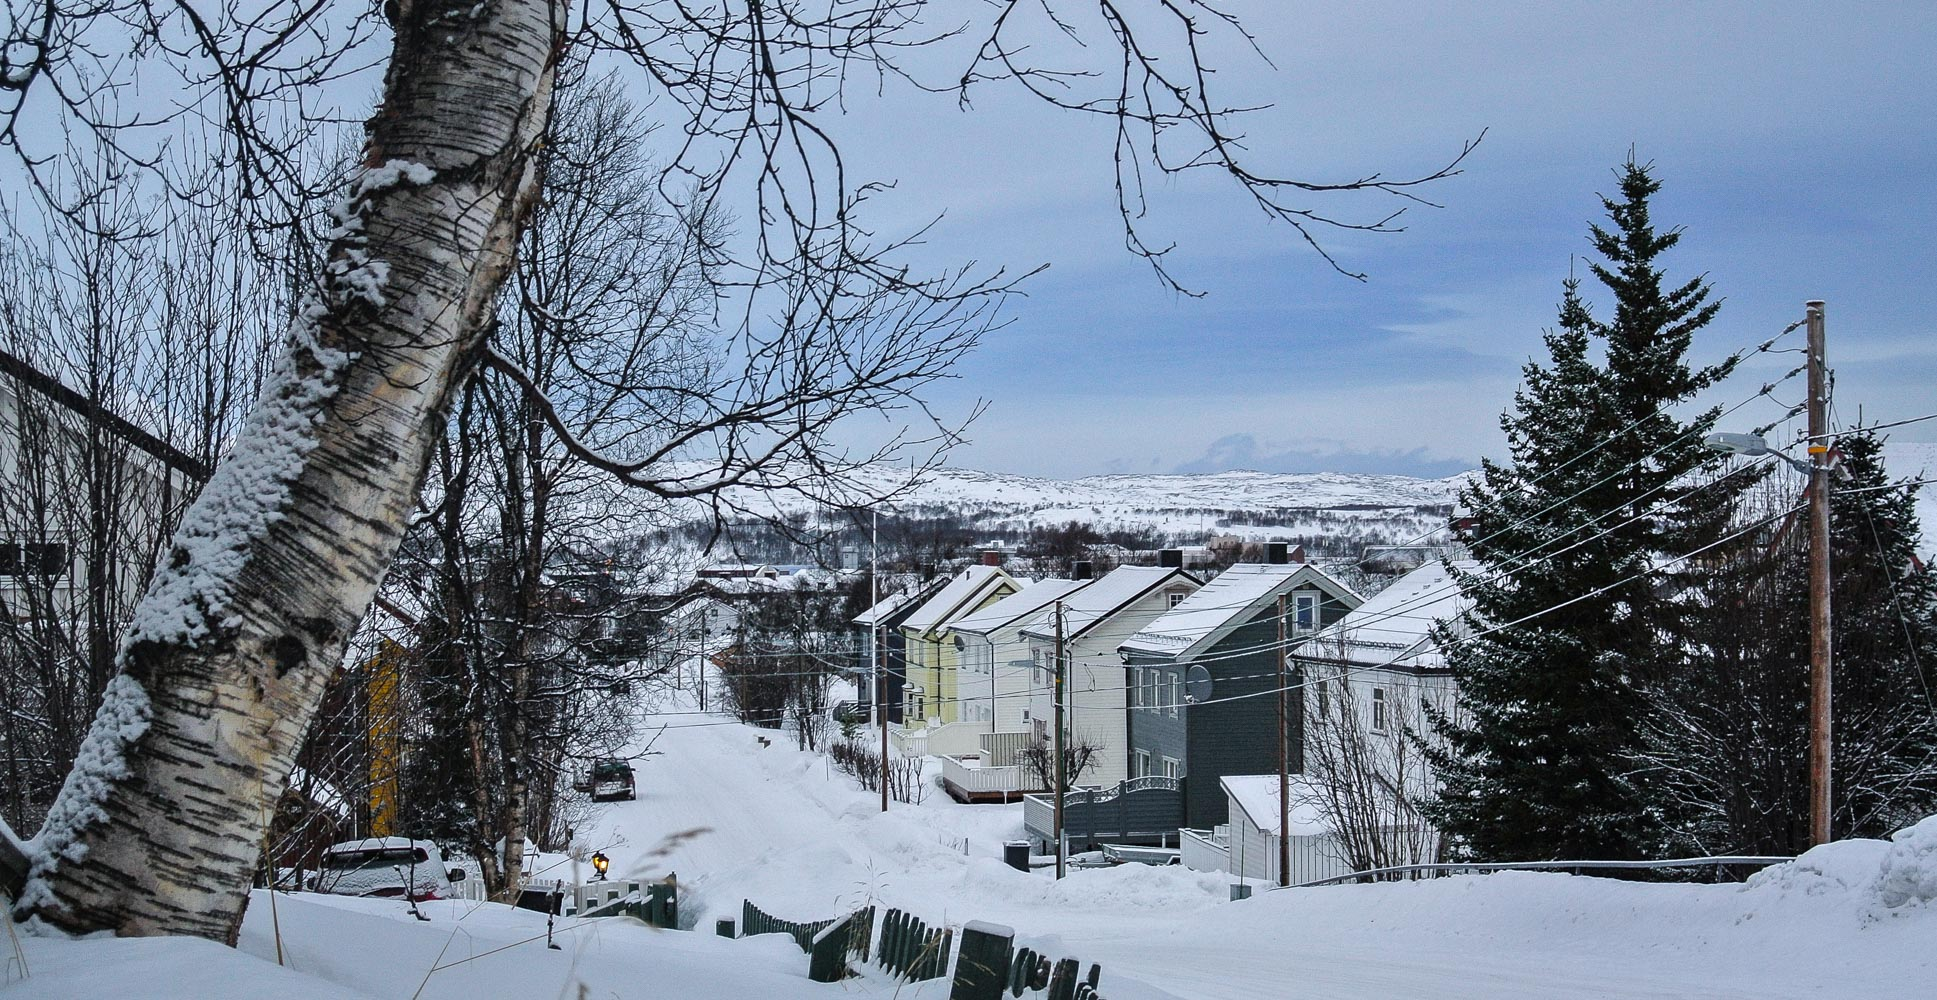 Kirkenes, North Norway has a deep-sea port facing the Northeast Passage - and a projected arctic railway line connecting to Rovaniemi and continental Europe.  JONAA©Hlin Johannesdottir